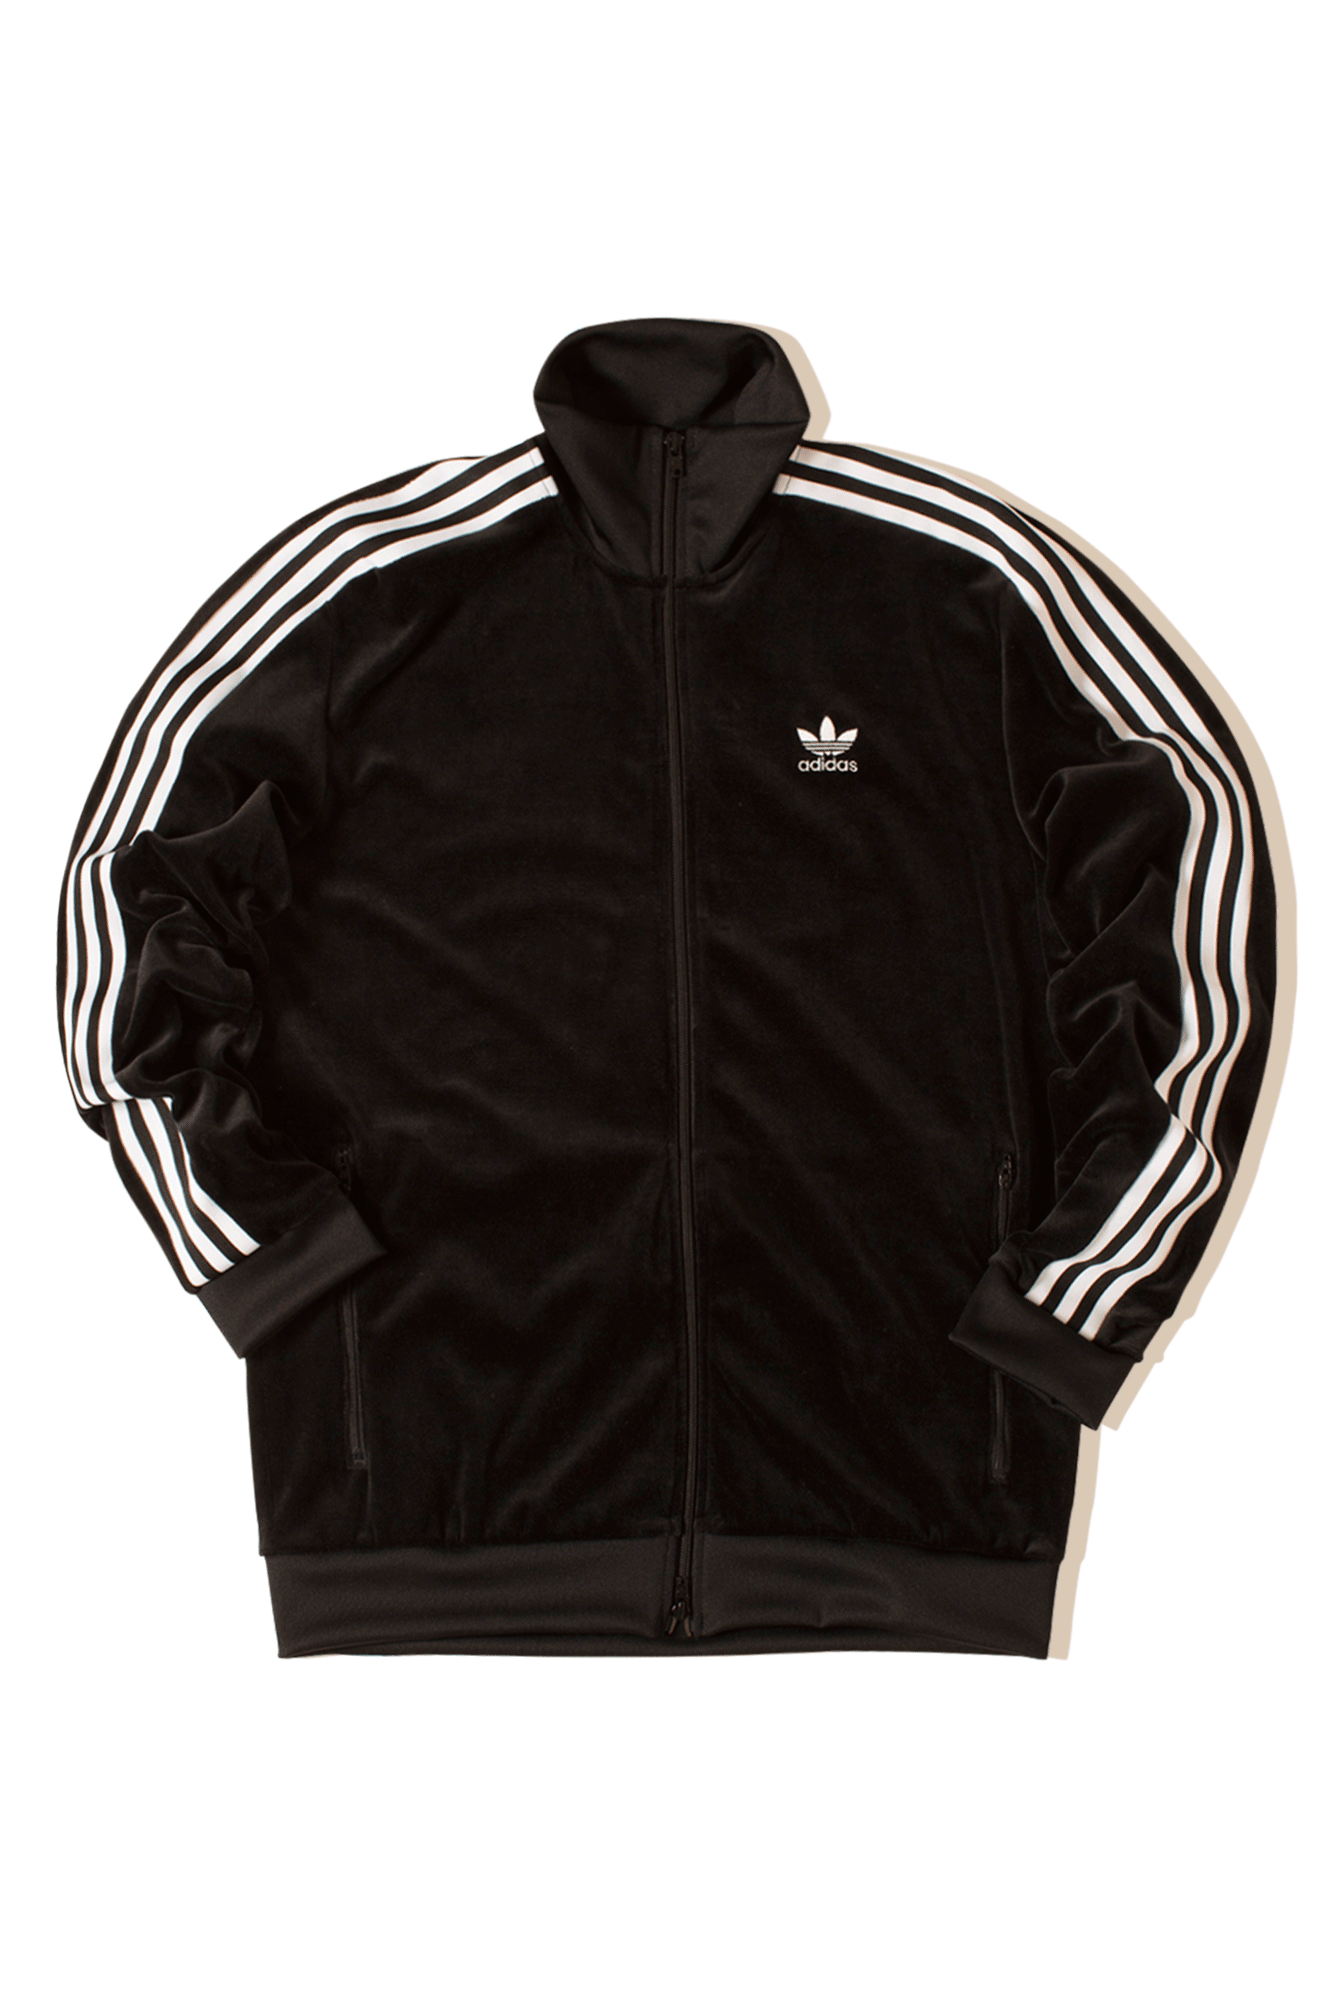 Adidas Originals Sweaters Cozy Tracktop Black DX3626#000#C0010#XS - One Block Down